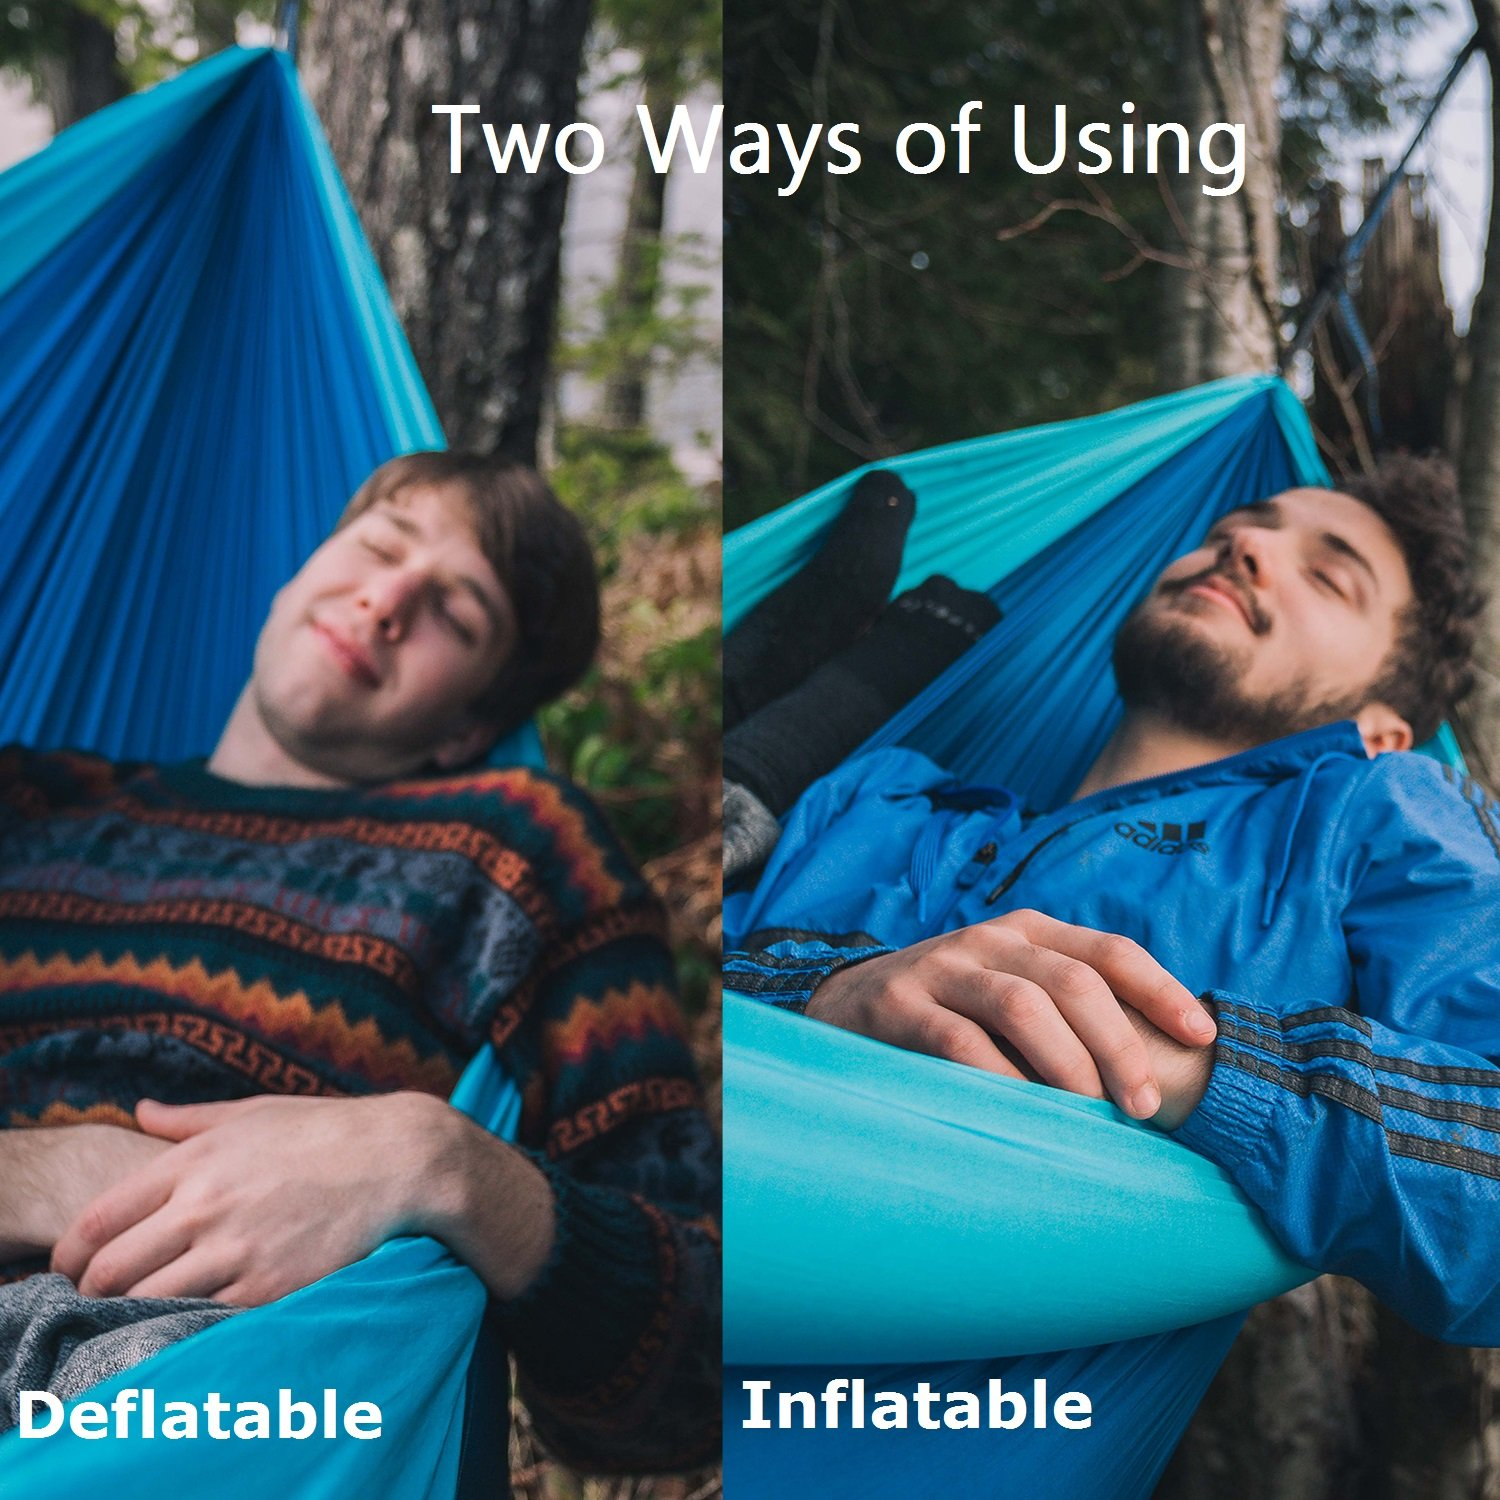 ALPRANG 2018 Upgrade Inflatable Hammock, Portable Foldable Nylon Hammock with Tree Hanging Straps- The Best Double Hammock for Camping, Hiking, Beach, Travel, Backpacking (Lake Blue) by ALPRANG (Image #3)